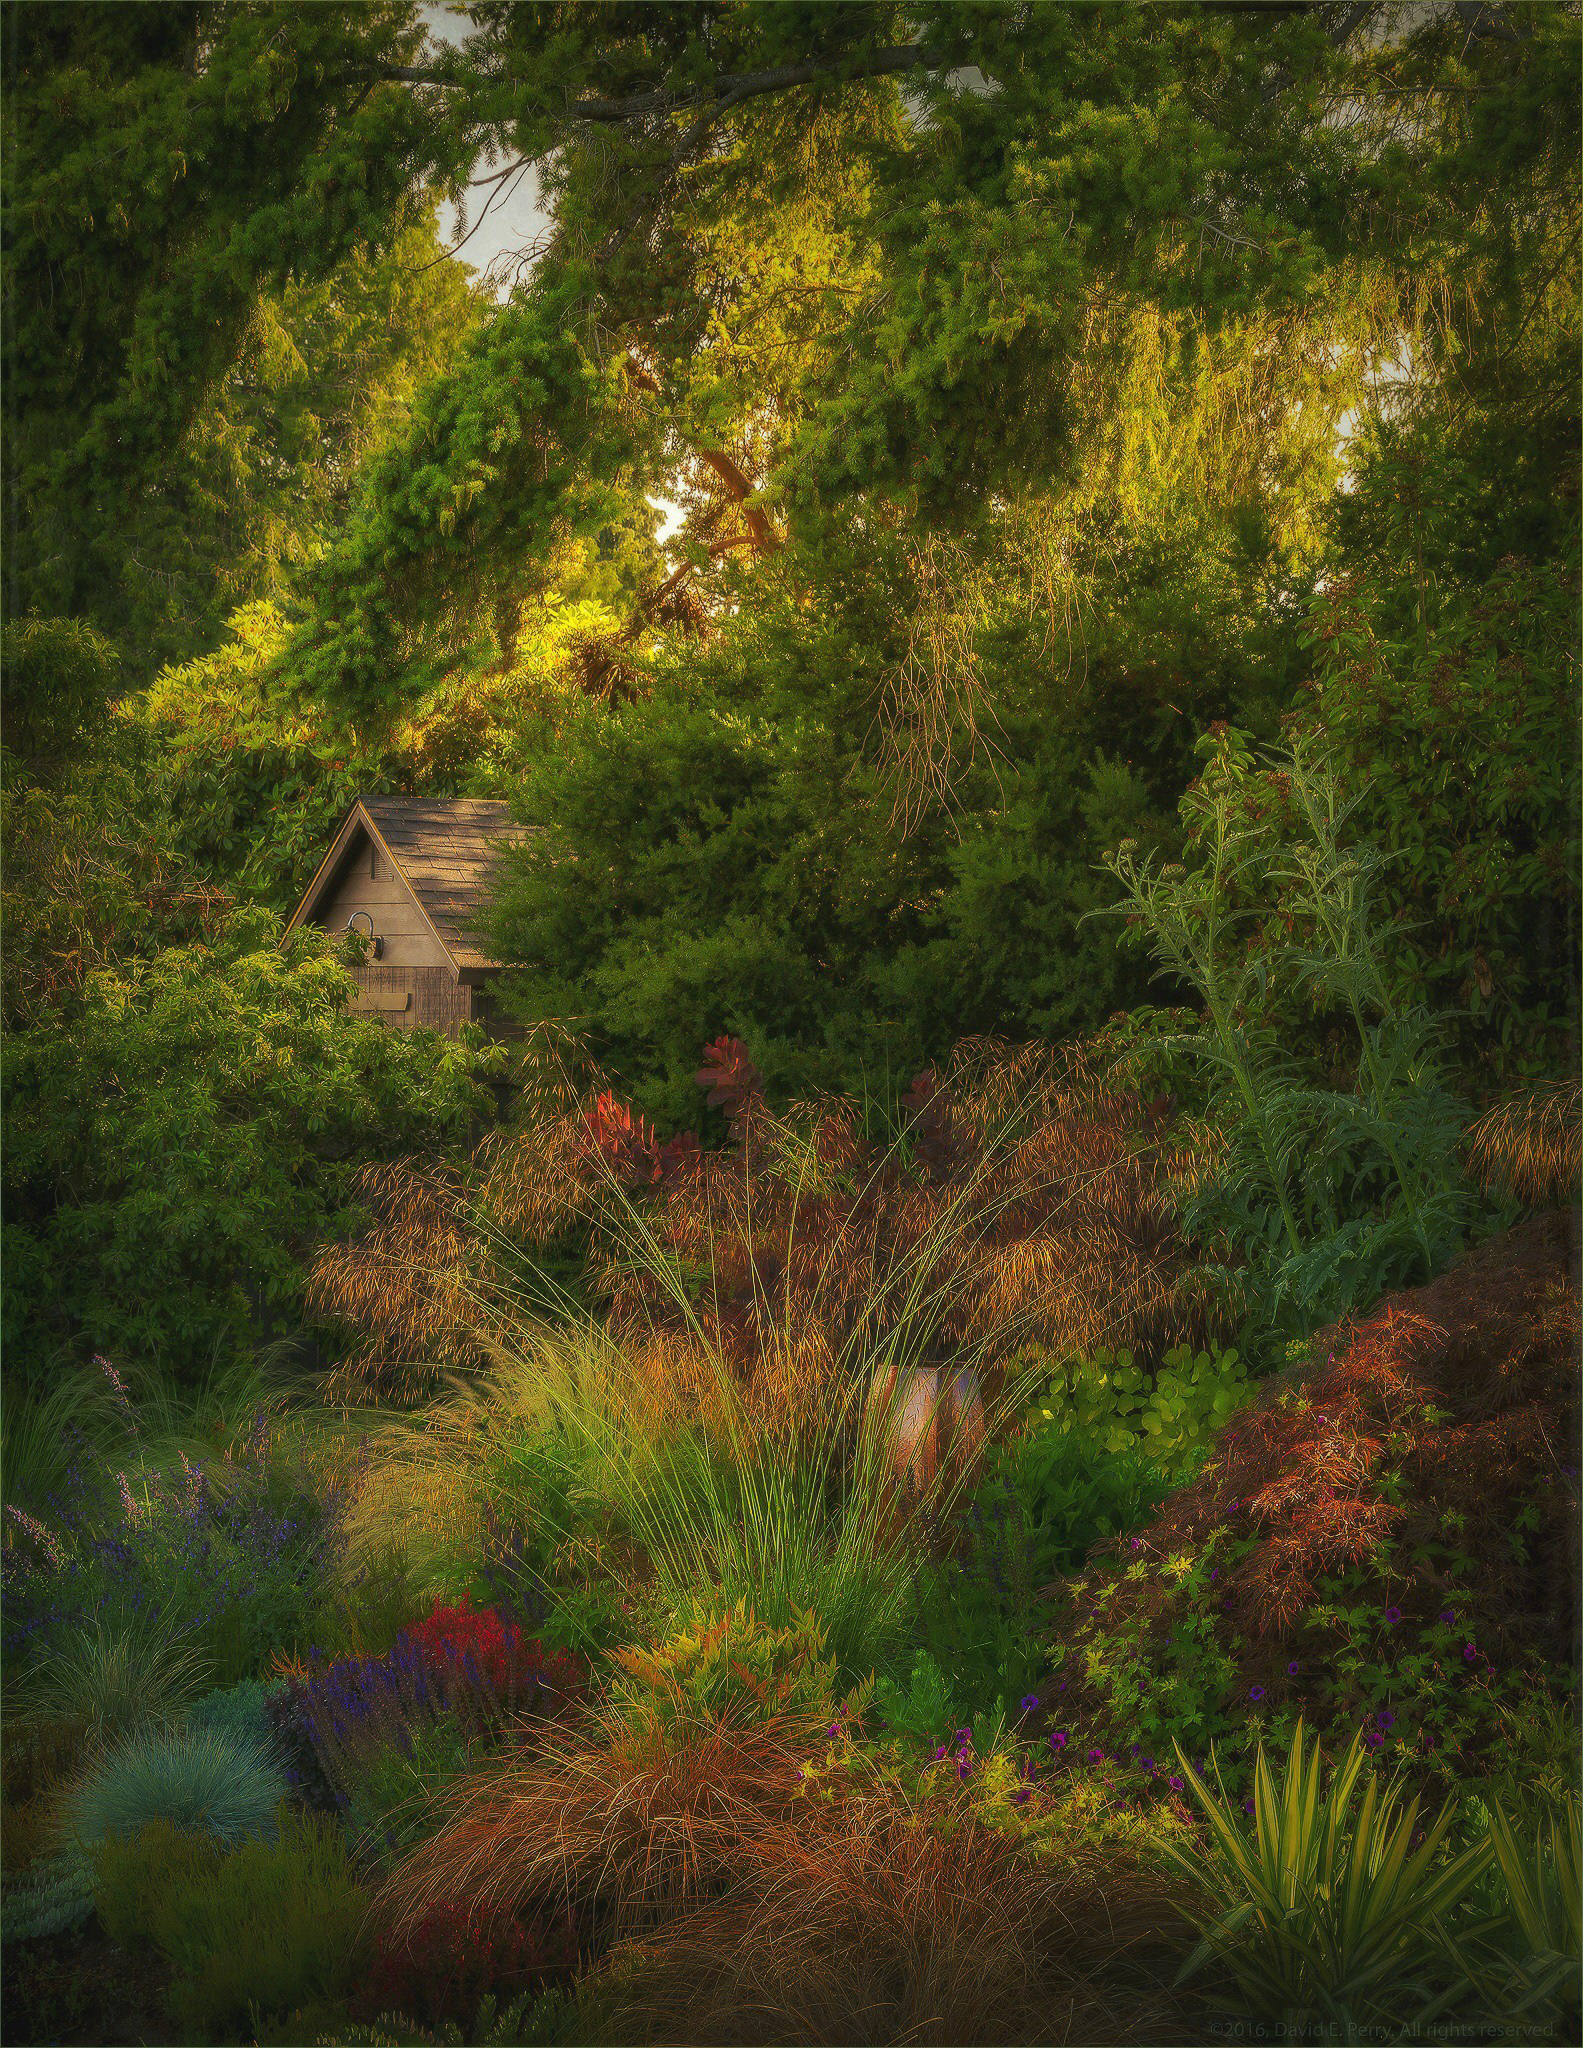 DAVID PERRY PHOTOGRAPHER - Garden Landscapes